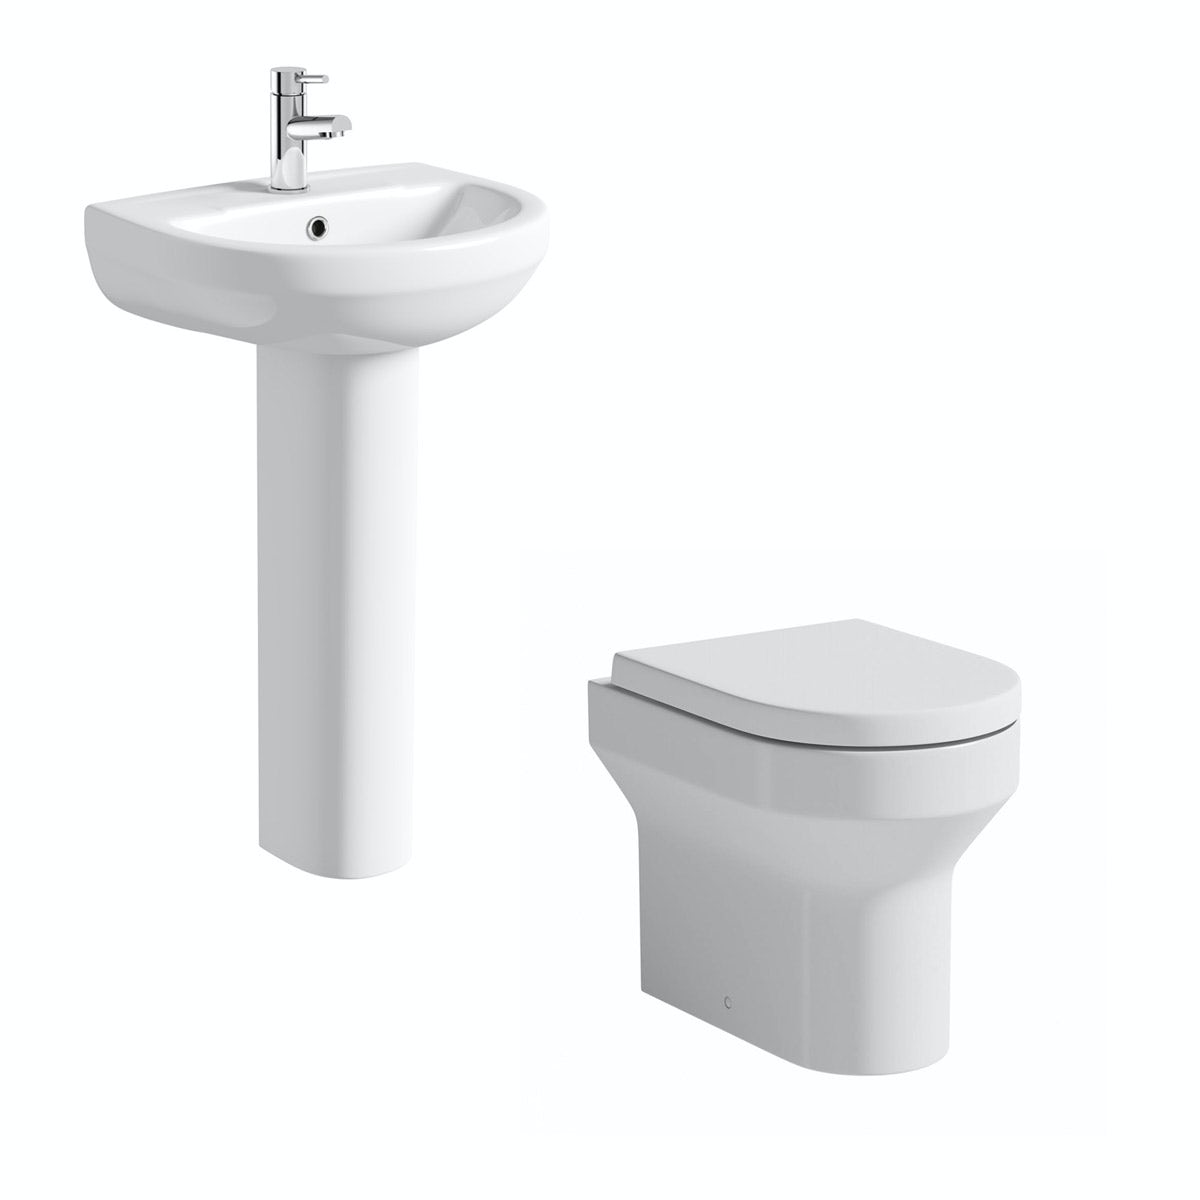 Orchard Wharfe back to wall cloakroom suite with full pedestal basin 500mm